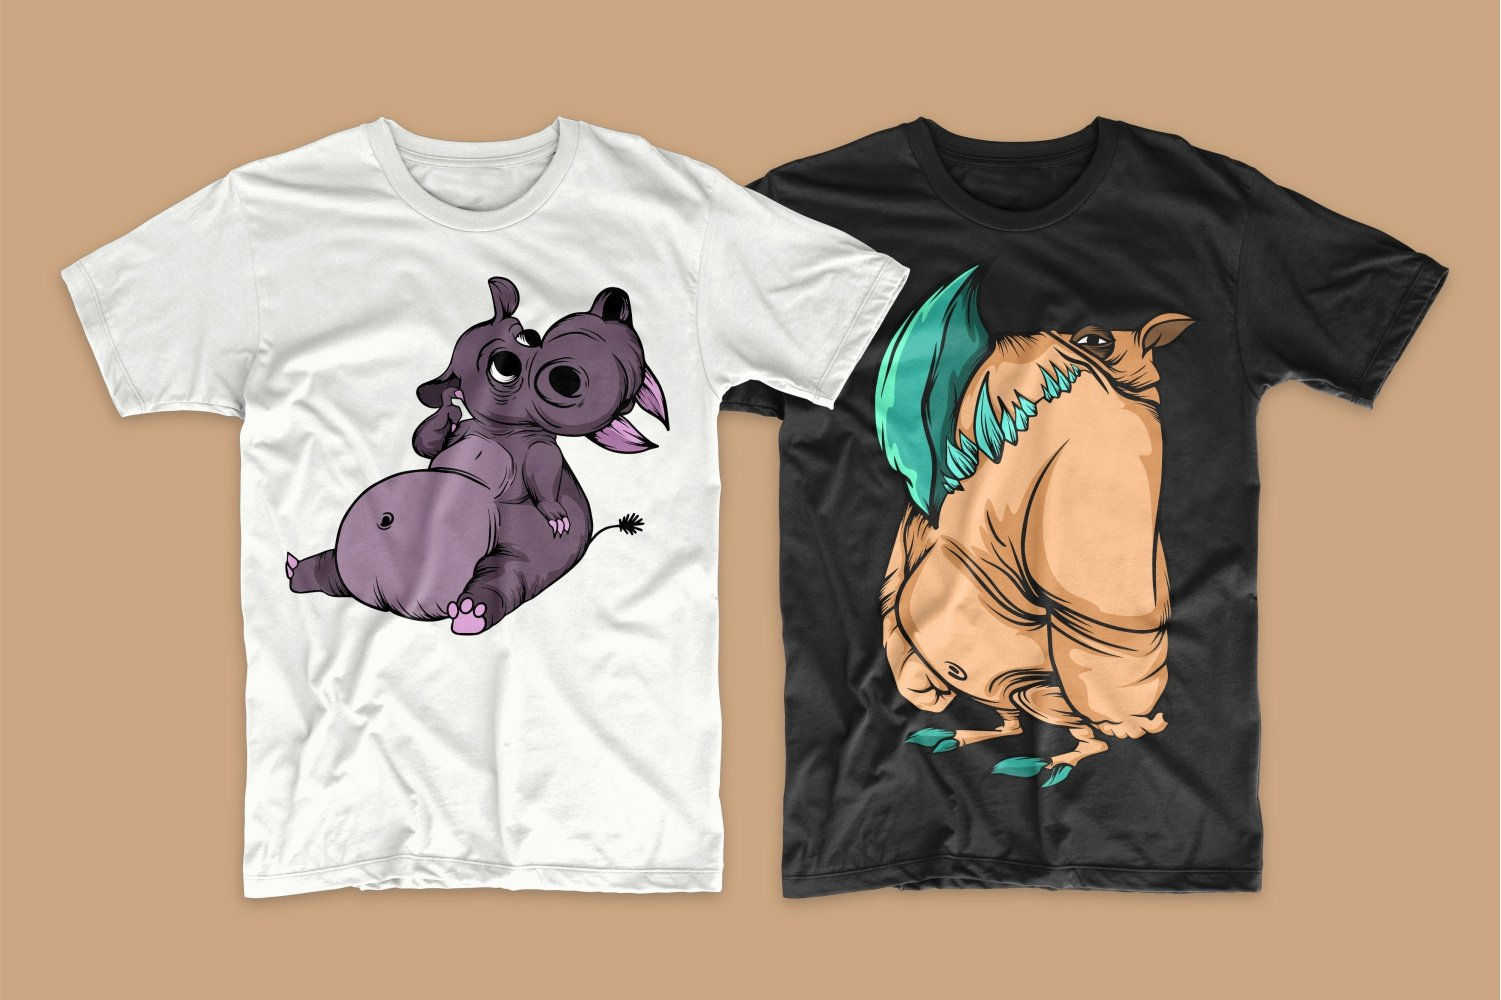 A white T-shirt with a relaxed little purple hippopotamus and a black one with an incomprehensible monster.